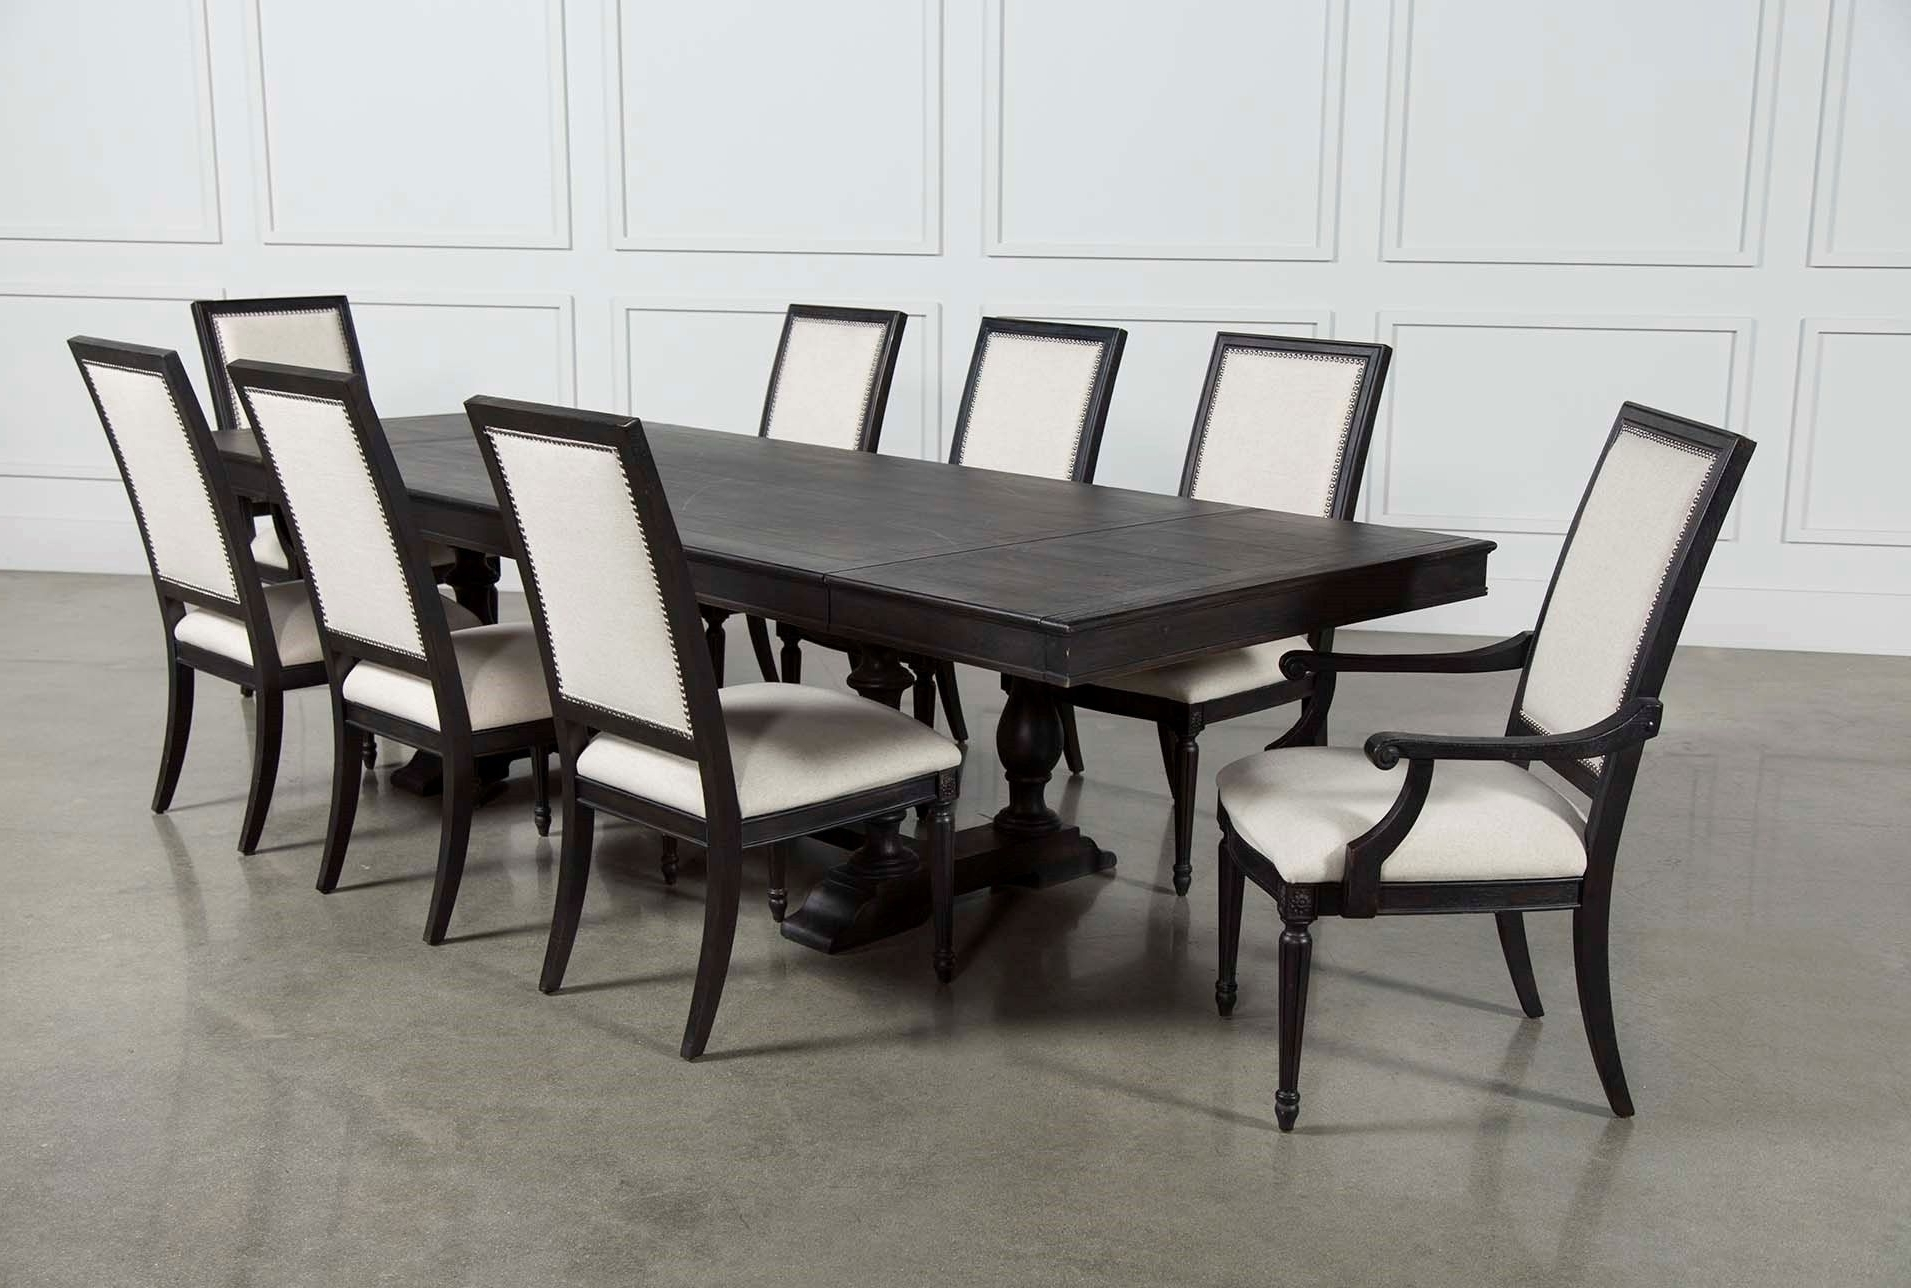 Chapleau 9 Piece Extension Dining Set, Brown (View 1 of 25)